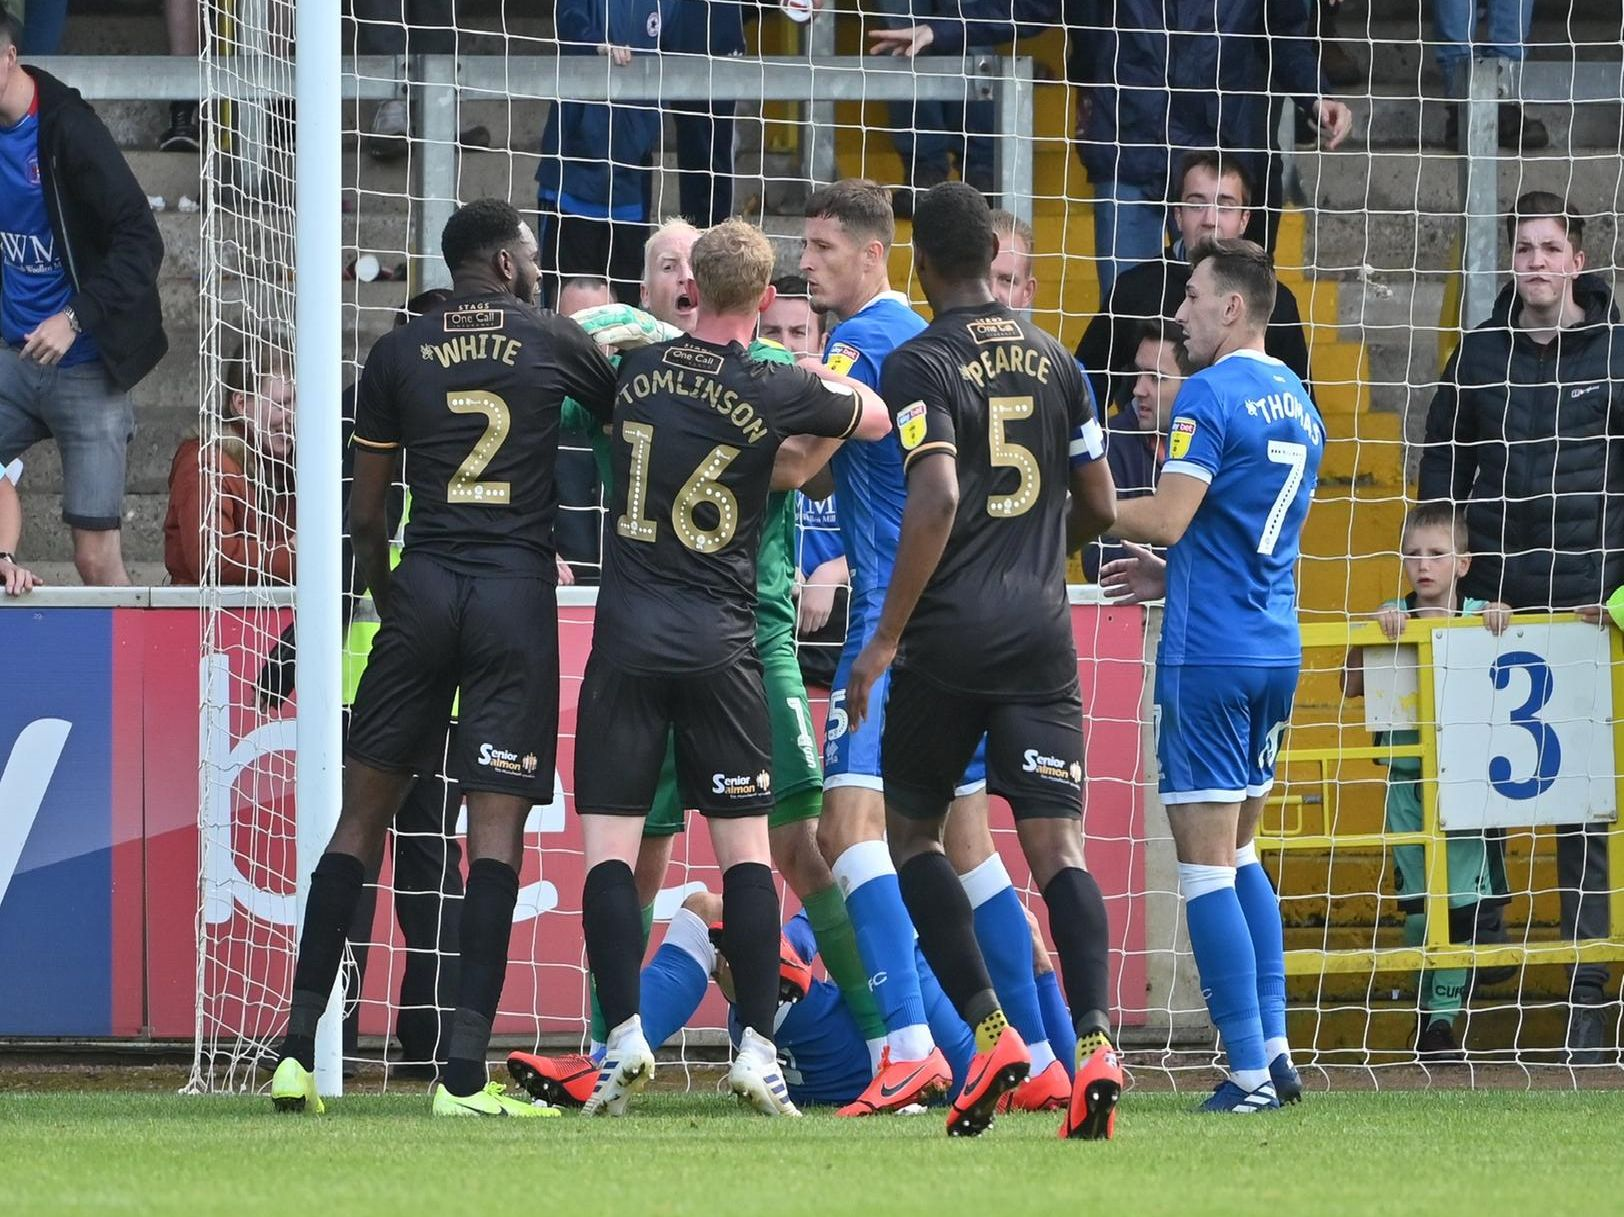 Stags got their first win of the campaign with a 2-0 victory at Carlisle.